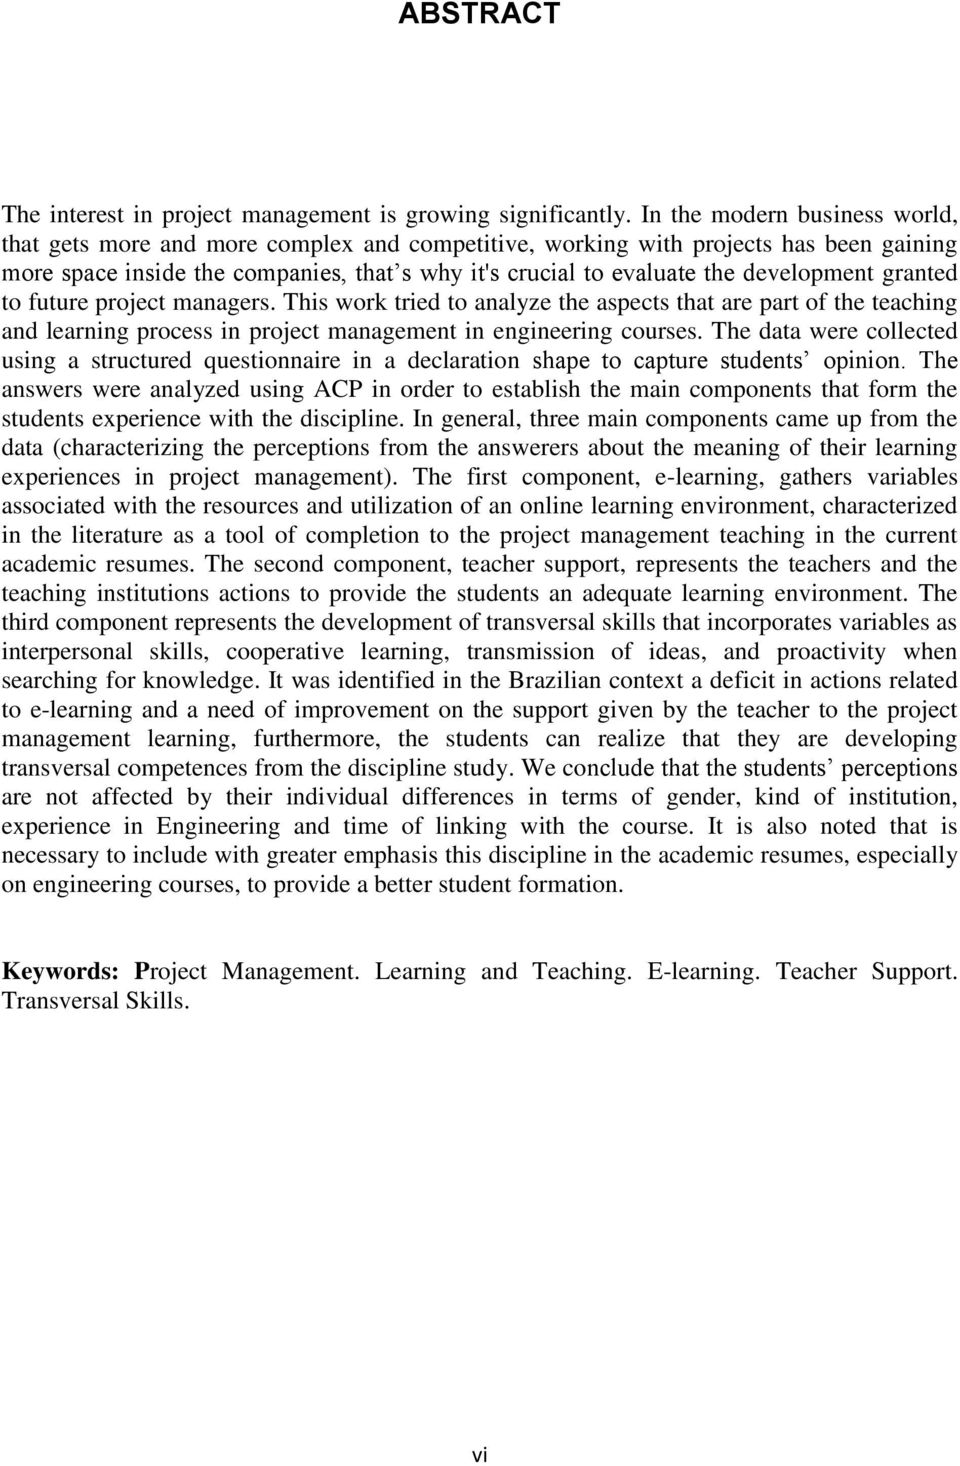 development granted to future project managers. This work tried to analyze the aspects that are part of the teaching and learning process in project management in engineering courses.